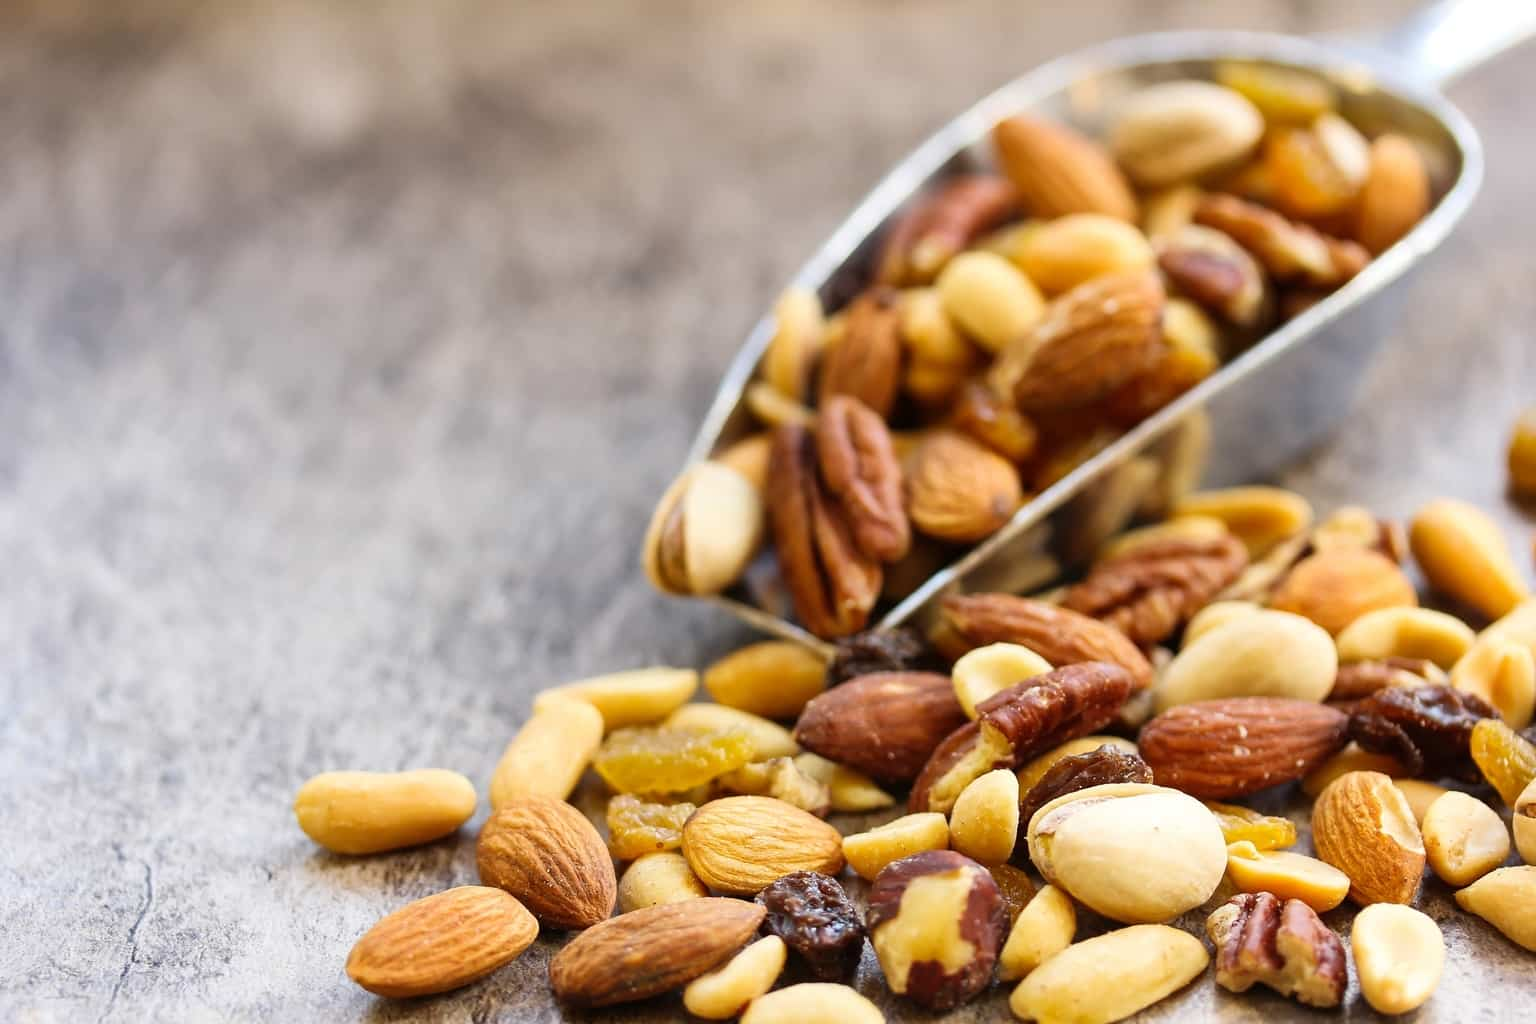 Eating nuts won't make you healthier